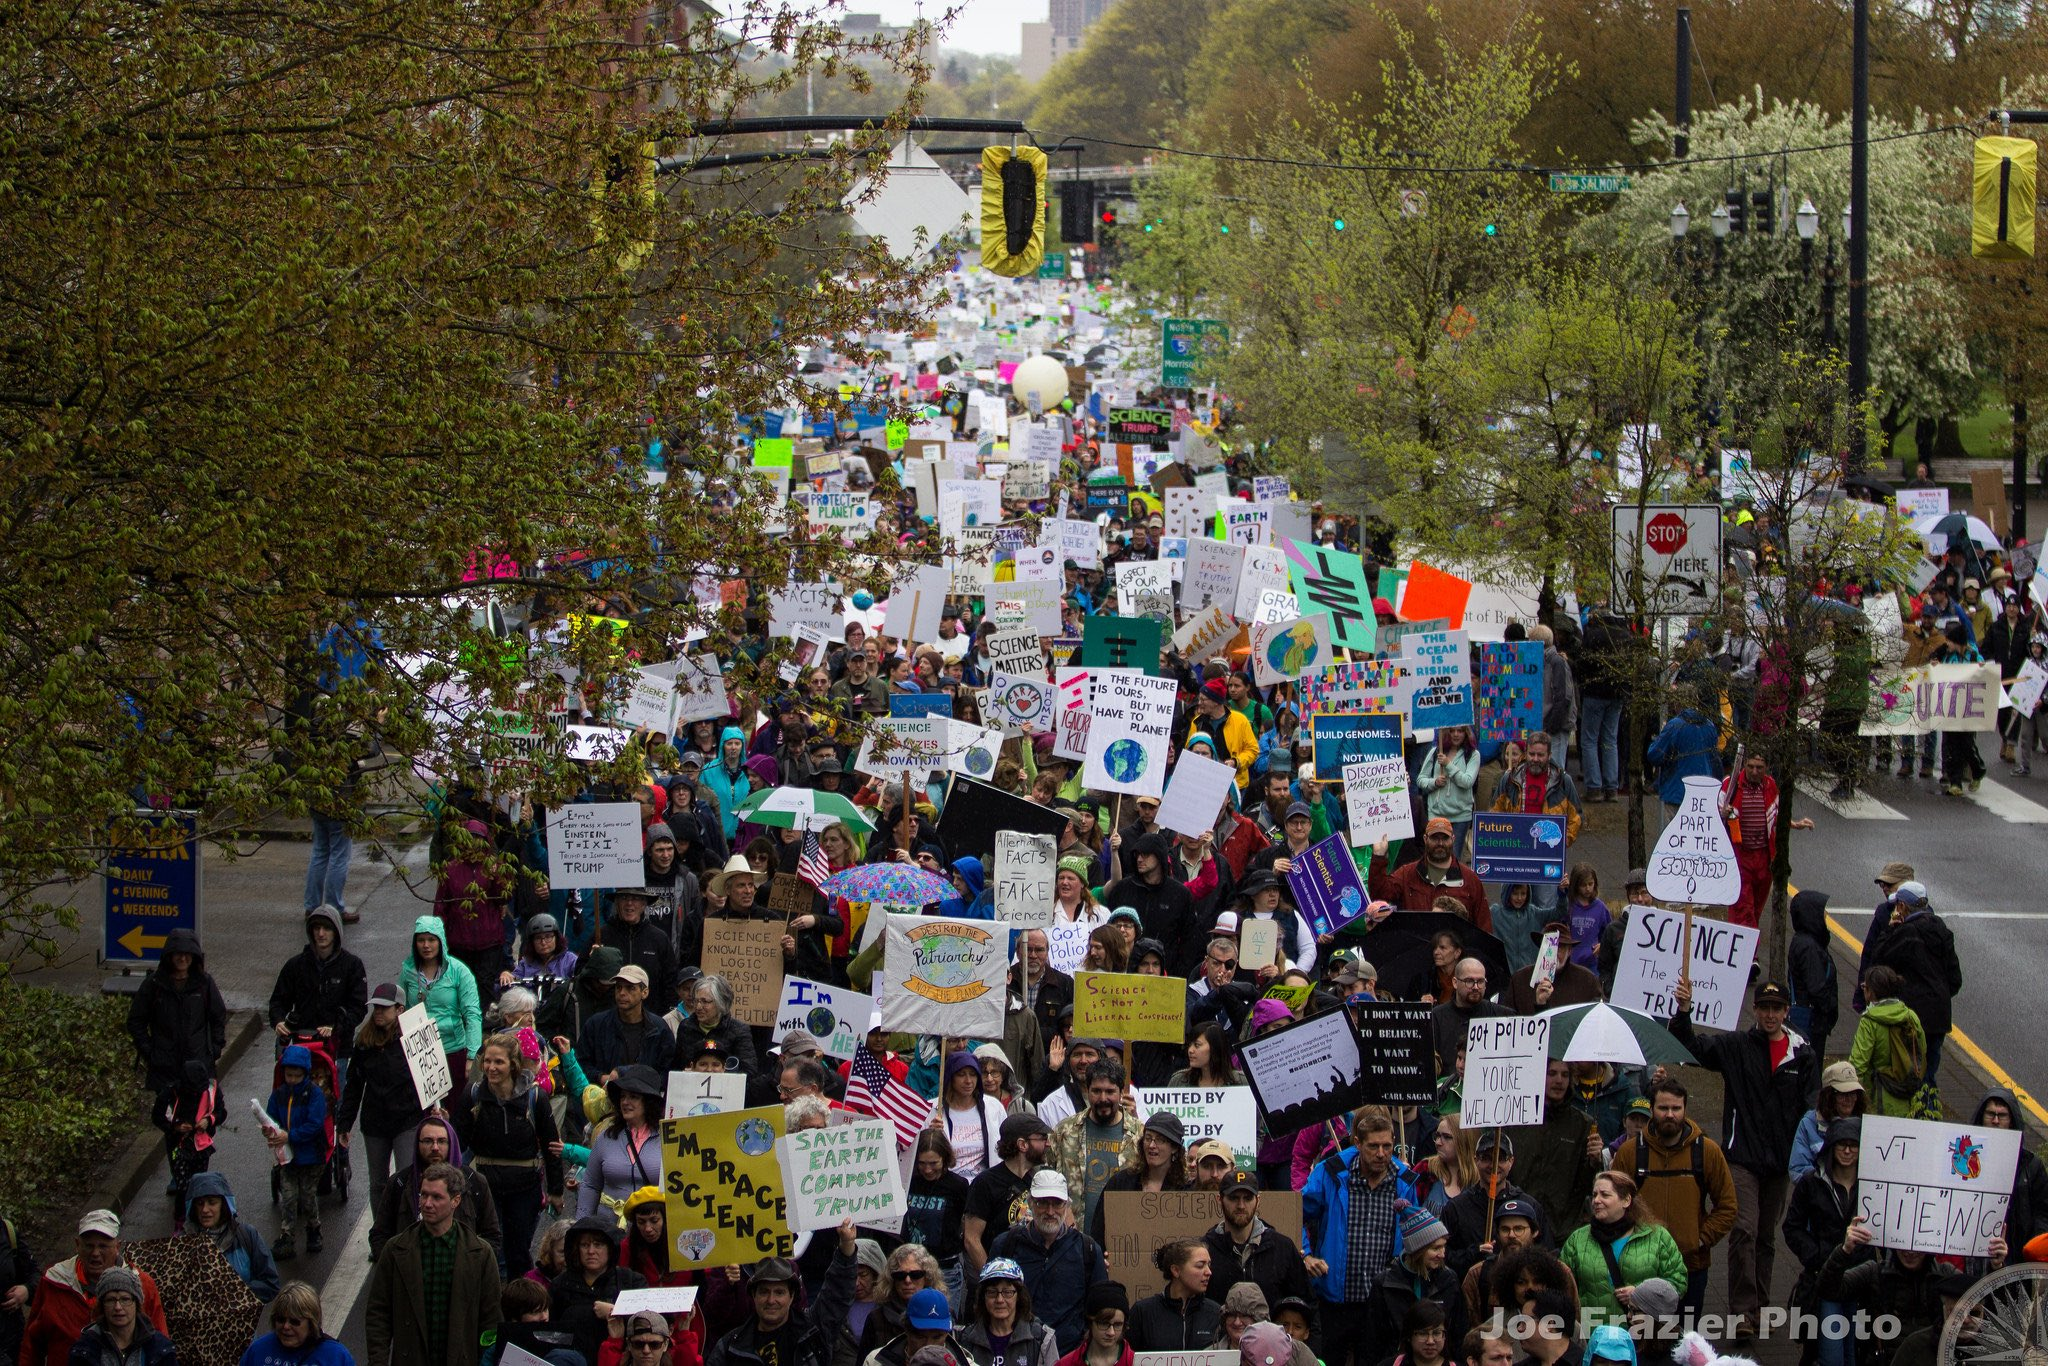 The 'March for Science' underway at Portland, Oregon. Credit: Joe Frazier Photo/Flickr, CC BY 2.0